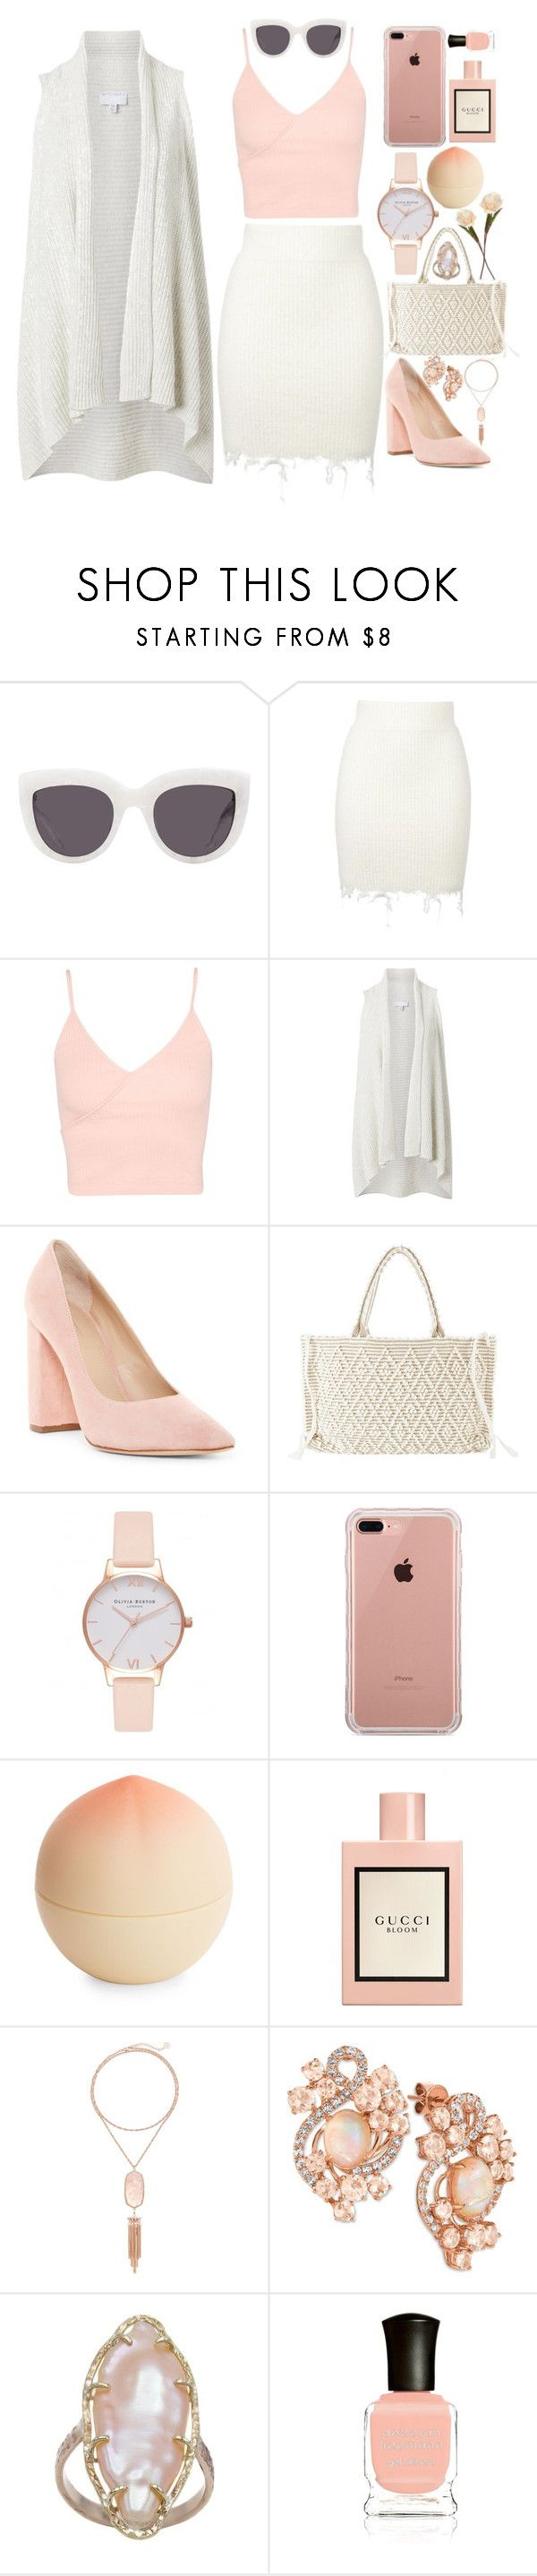 """""""Sassy Af"""" by madelineeve18 ❤ liked on Polyvore featuring Sabre, adidas Originals, Topshop, Witchery, Pour La Victoire, Antonello Tedde, Olivia Burton, Belkin, Tony Moly and Gucci"""